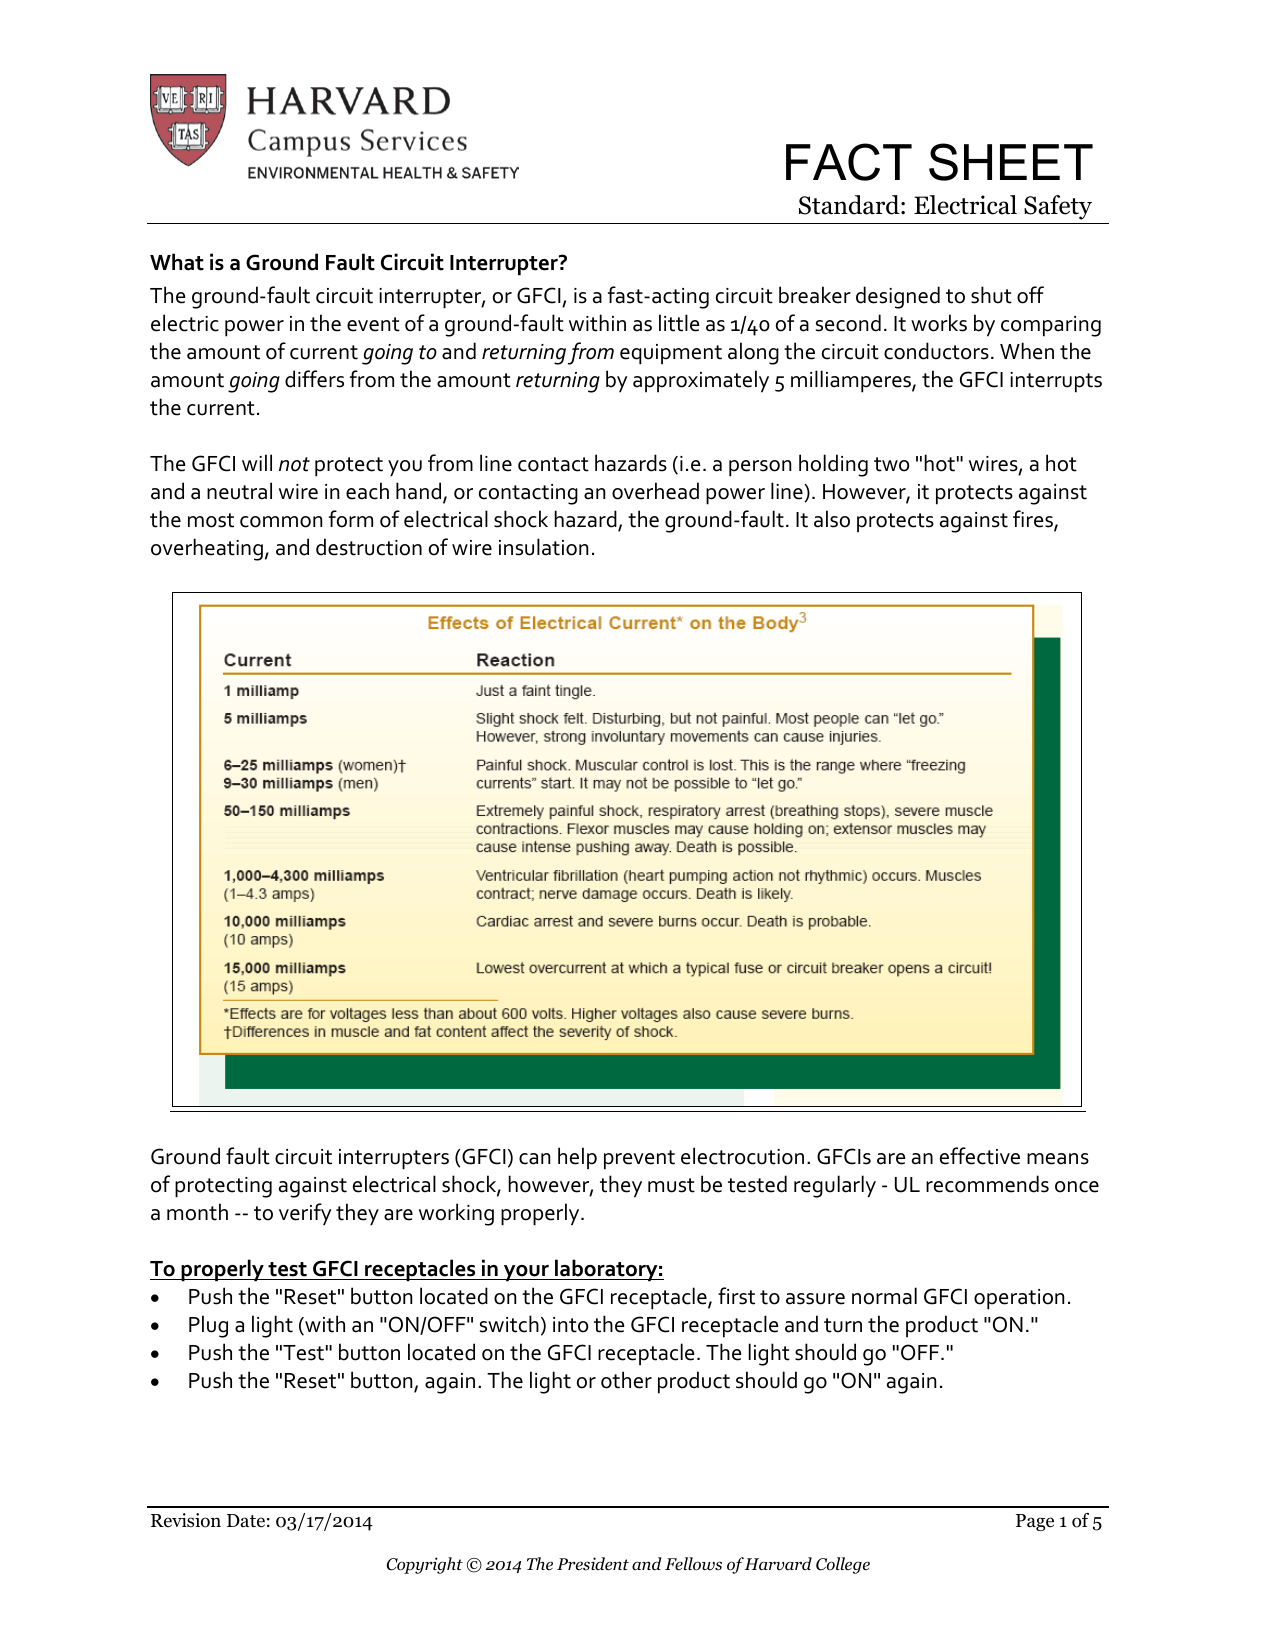 Ground Fault Circuit Interrupter Gfci Fact Sheet Bined Arc And On Wiring With